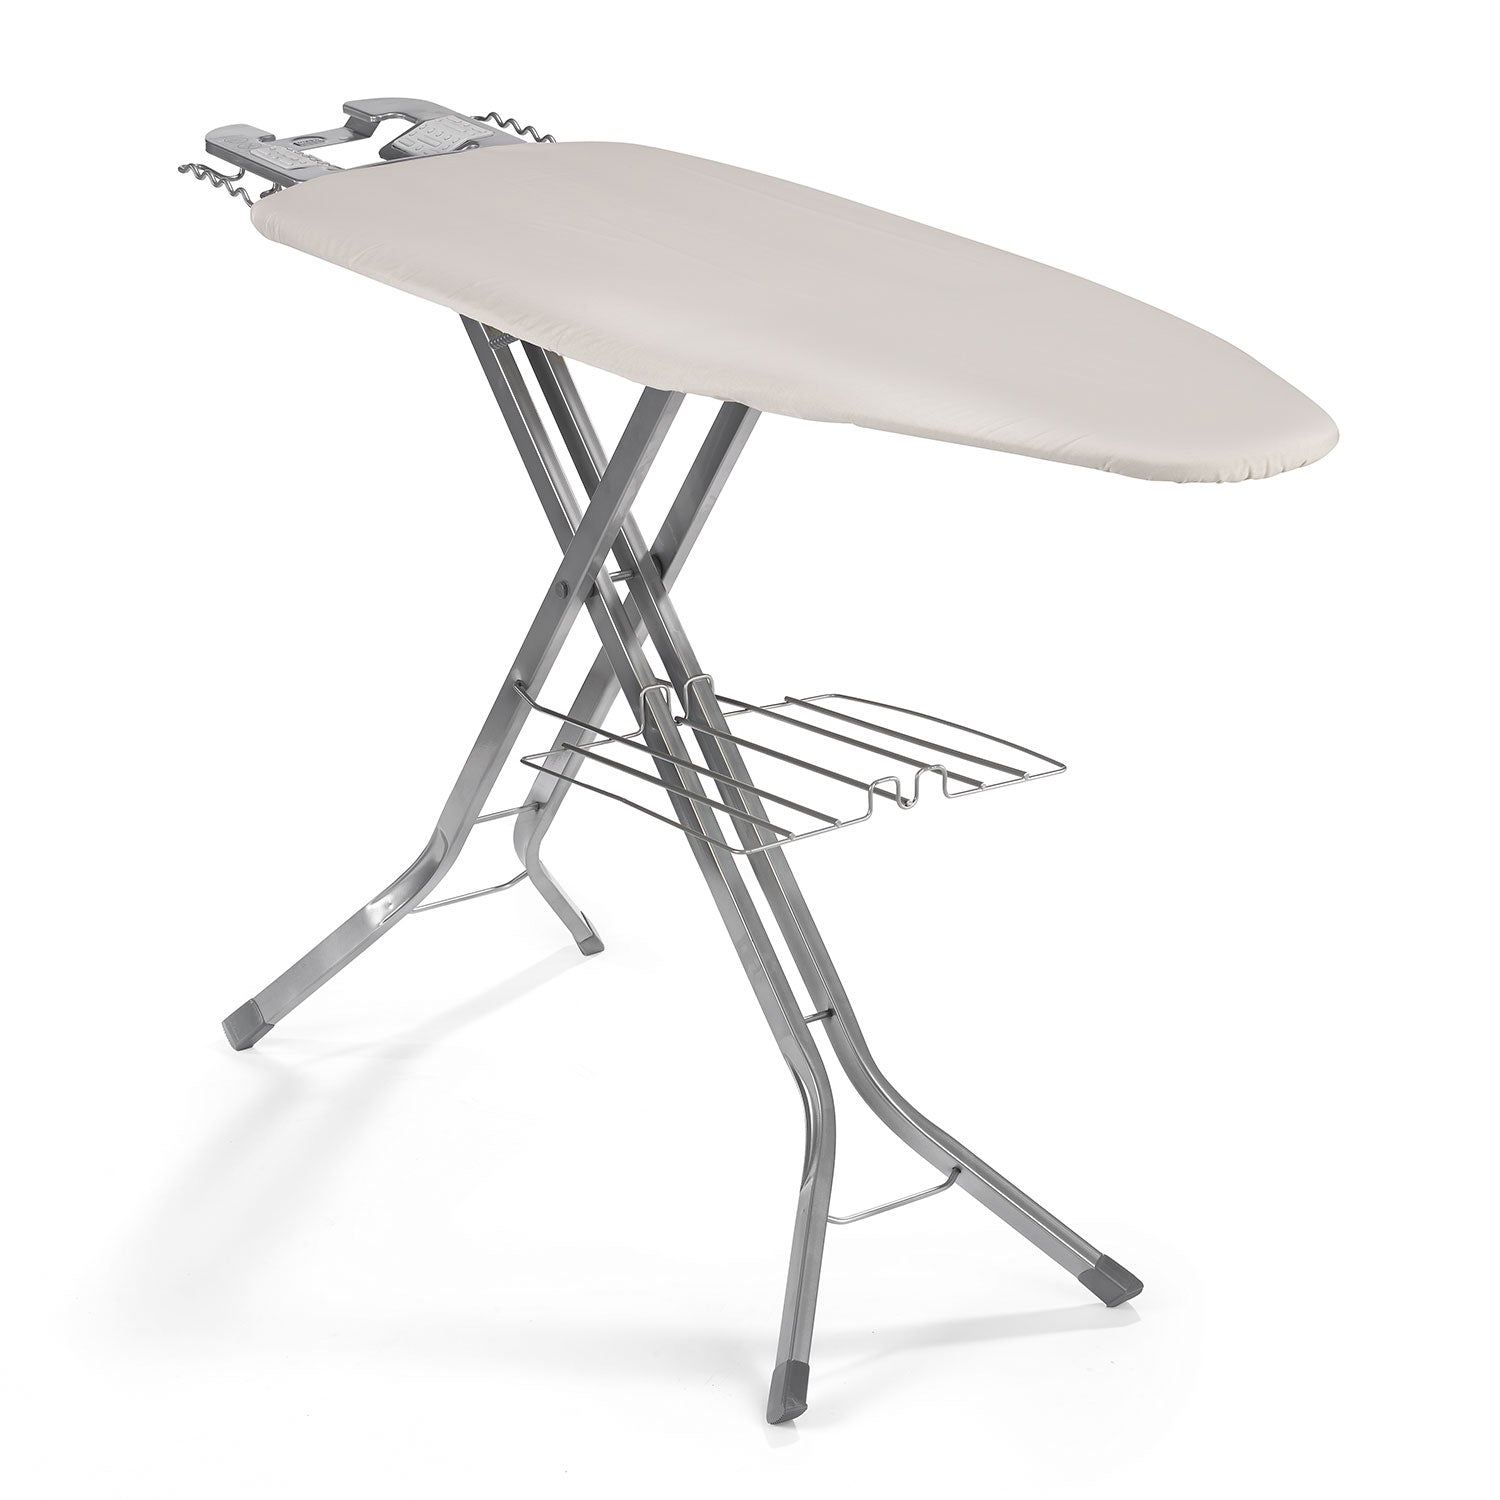 Ultimate Ironing Station - Set of 4 Feet